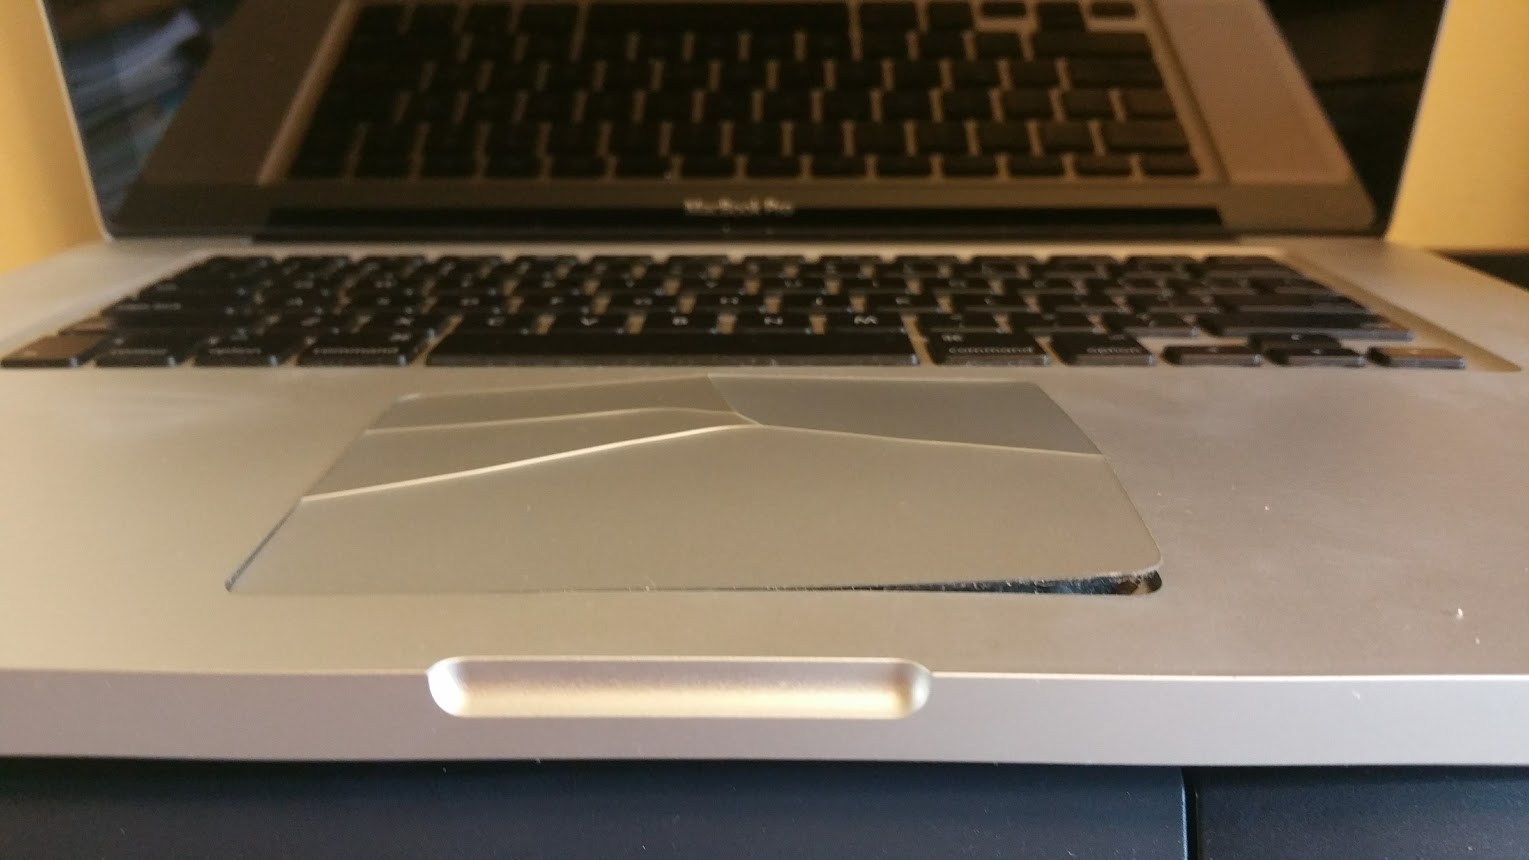 Trackpad destroyed